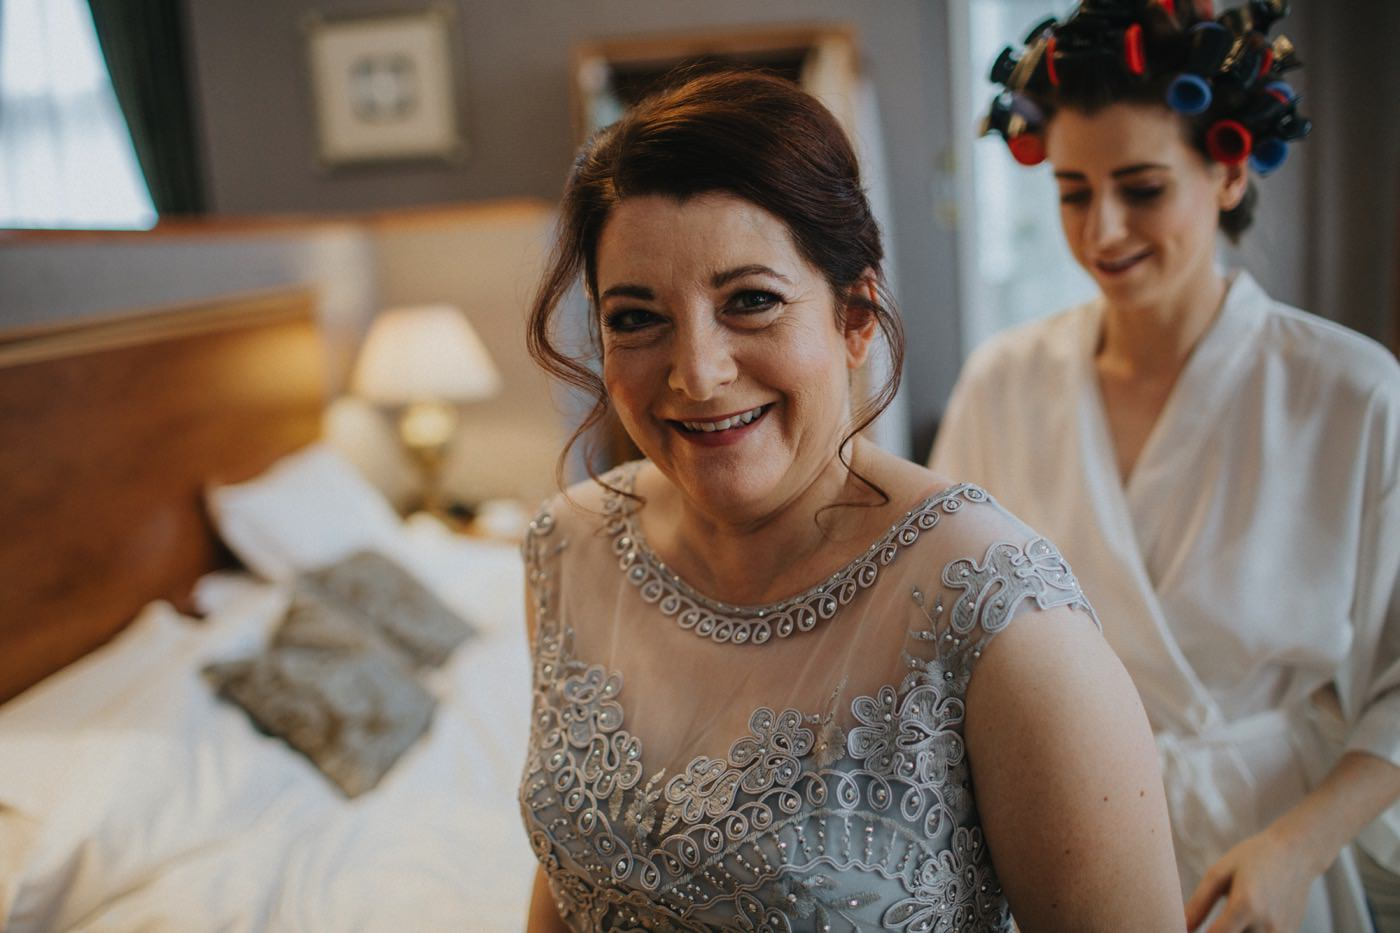 Rebecca & Ryan | The Faversham Leeds wedding 13